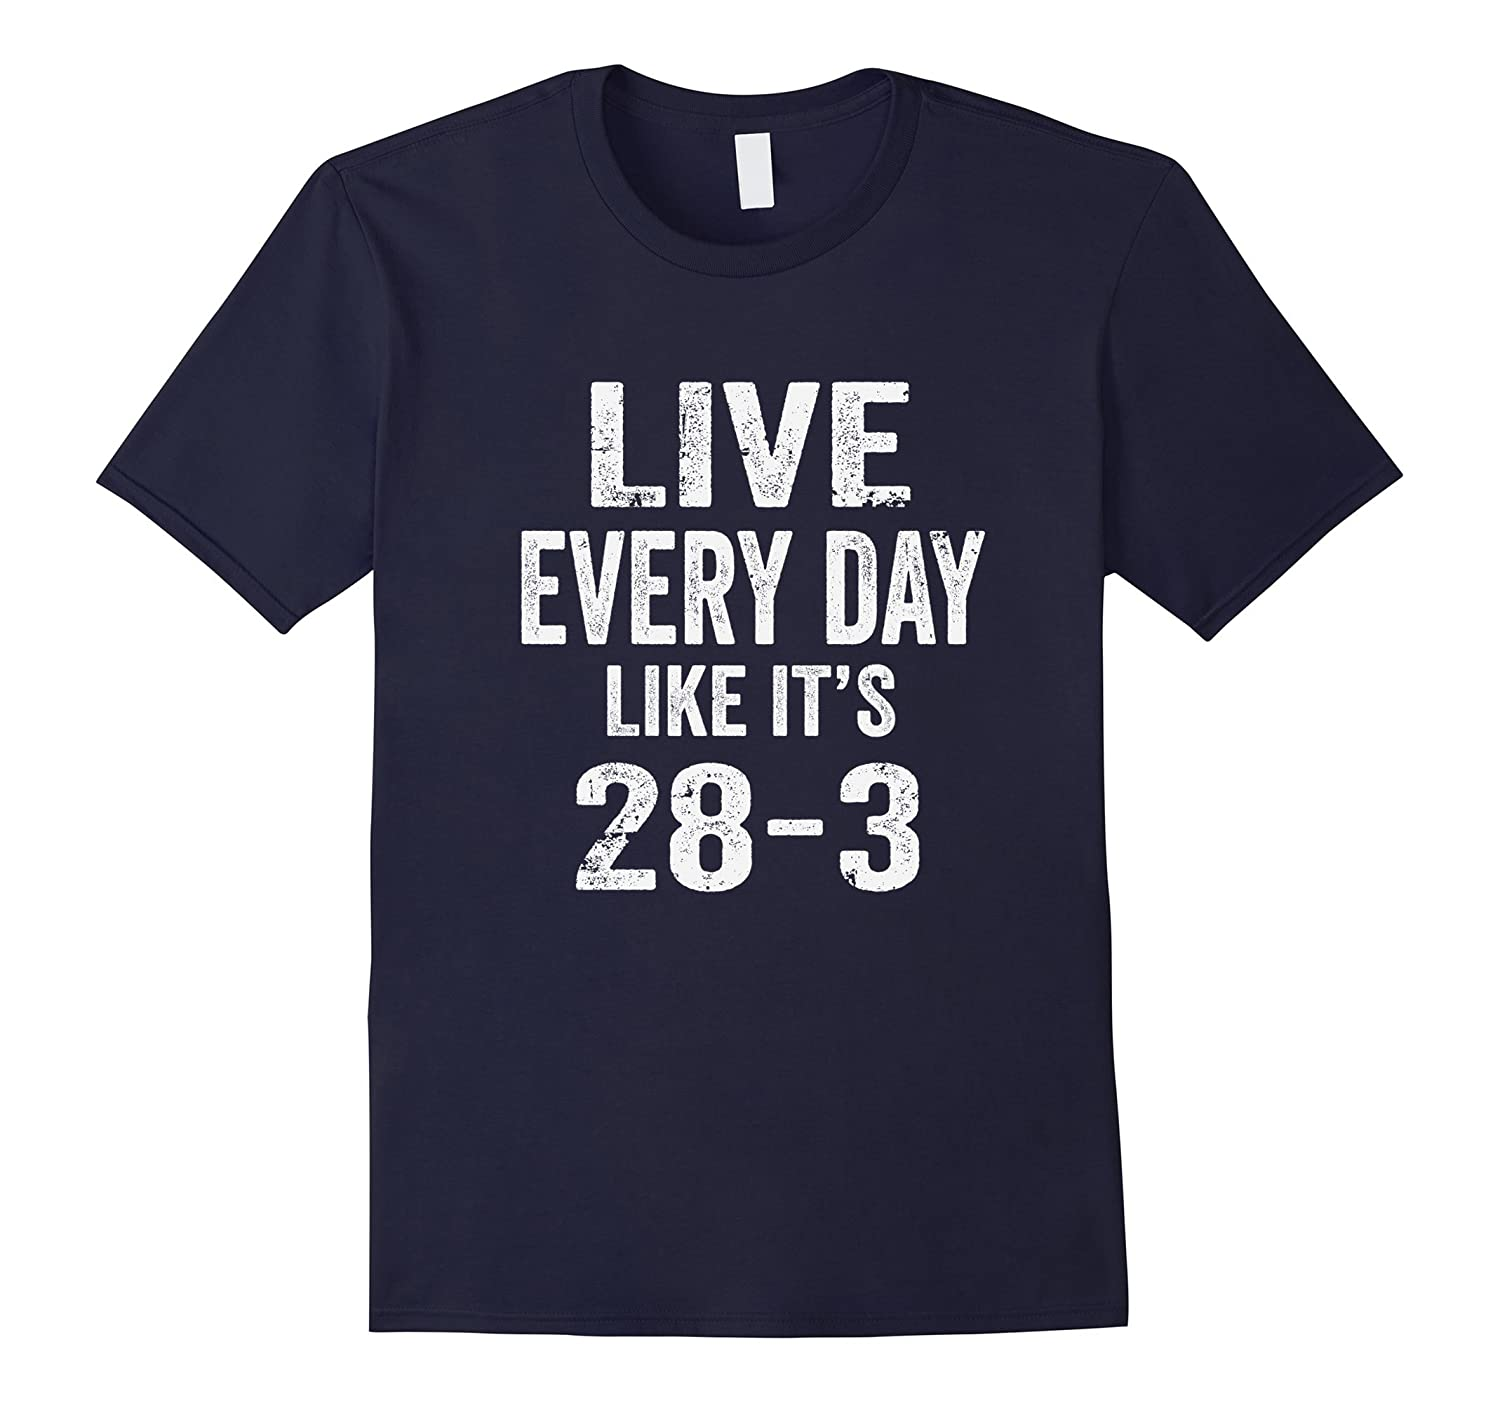 Funny Live Everyday Like It's 28-3 Hopeful Sport Fan T-Shirt-FL